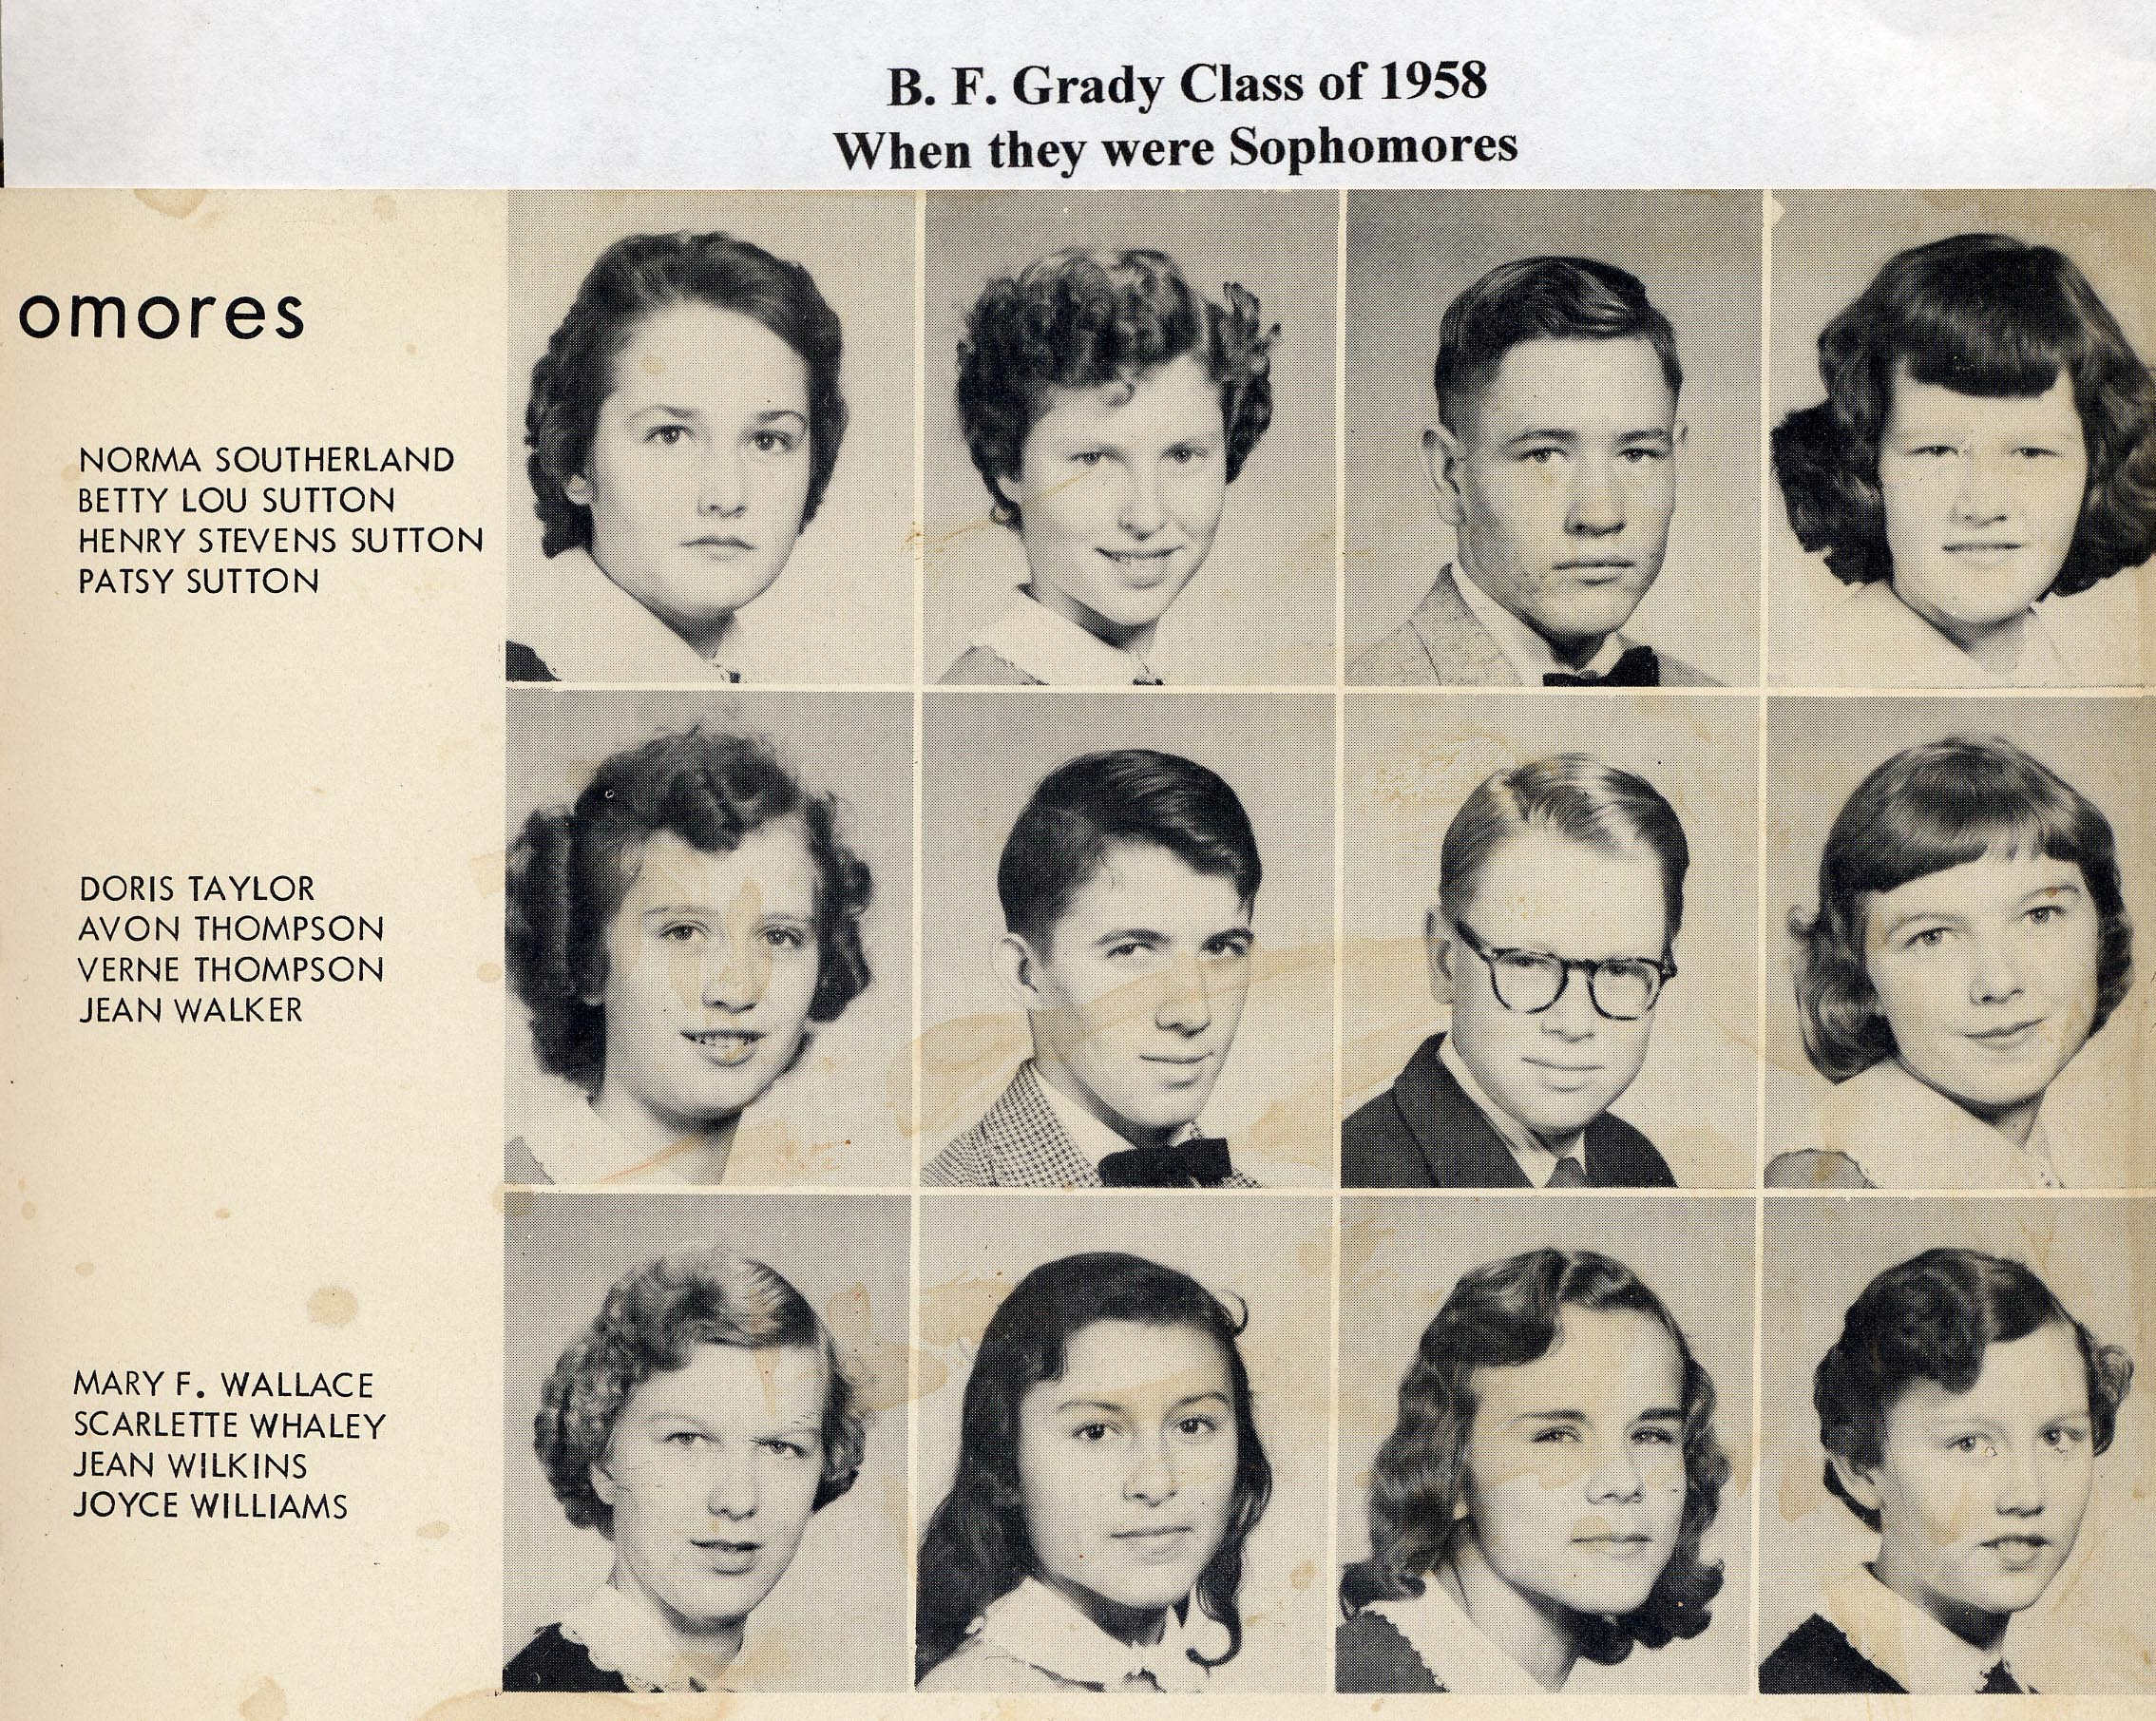 BFG Class of 1958 as Sopho p 5